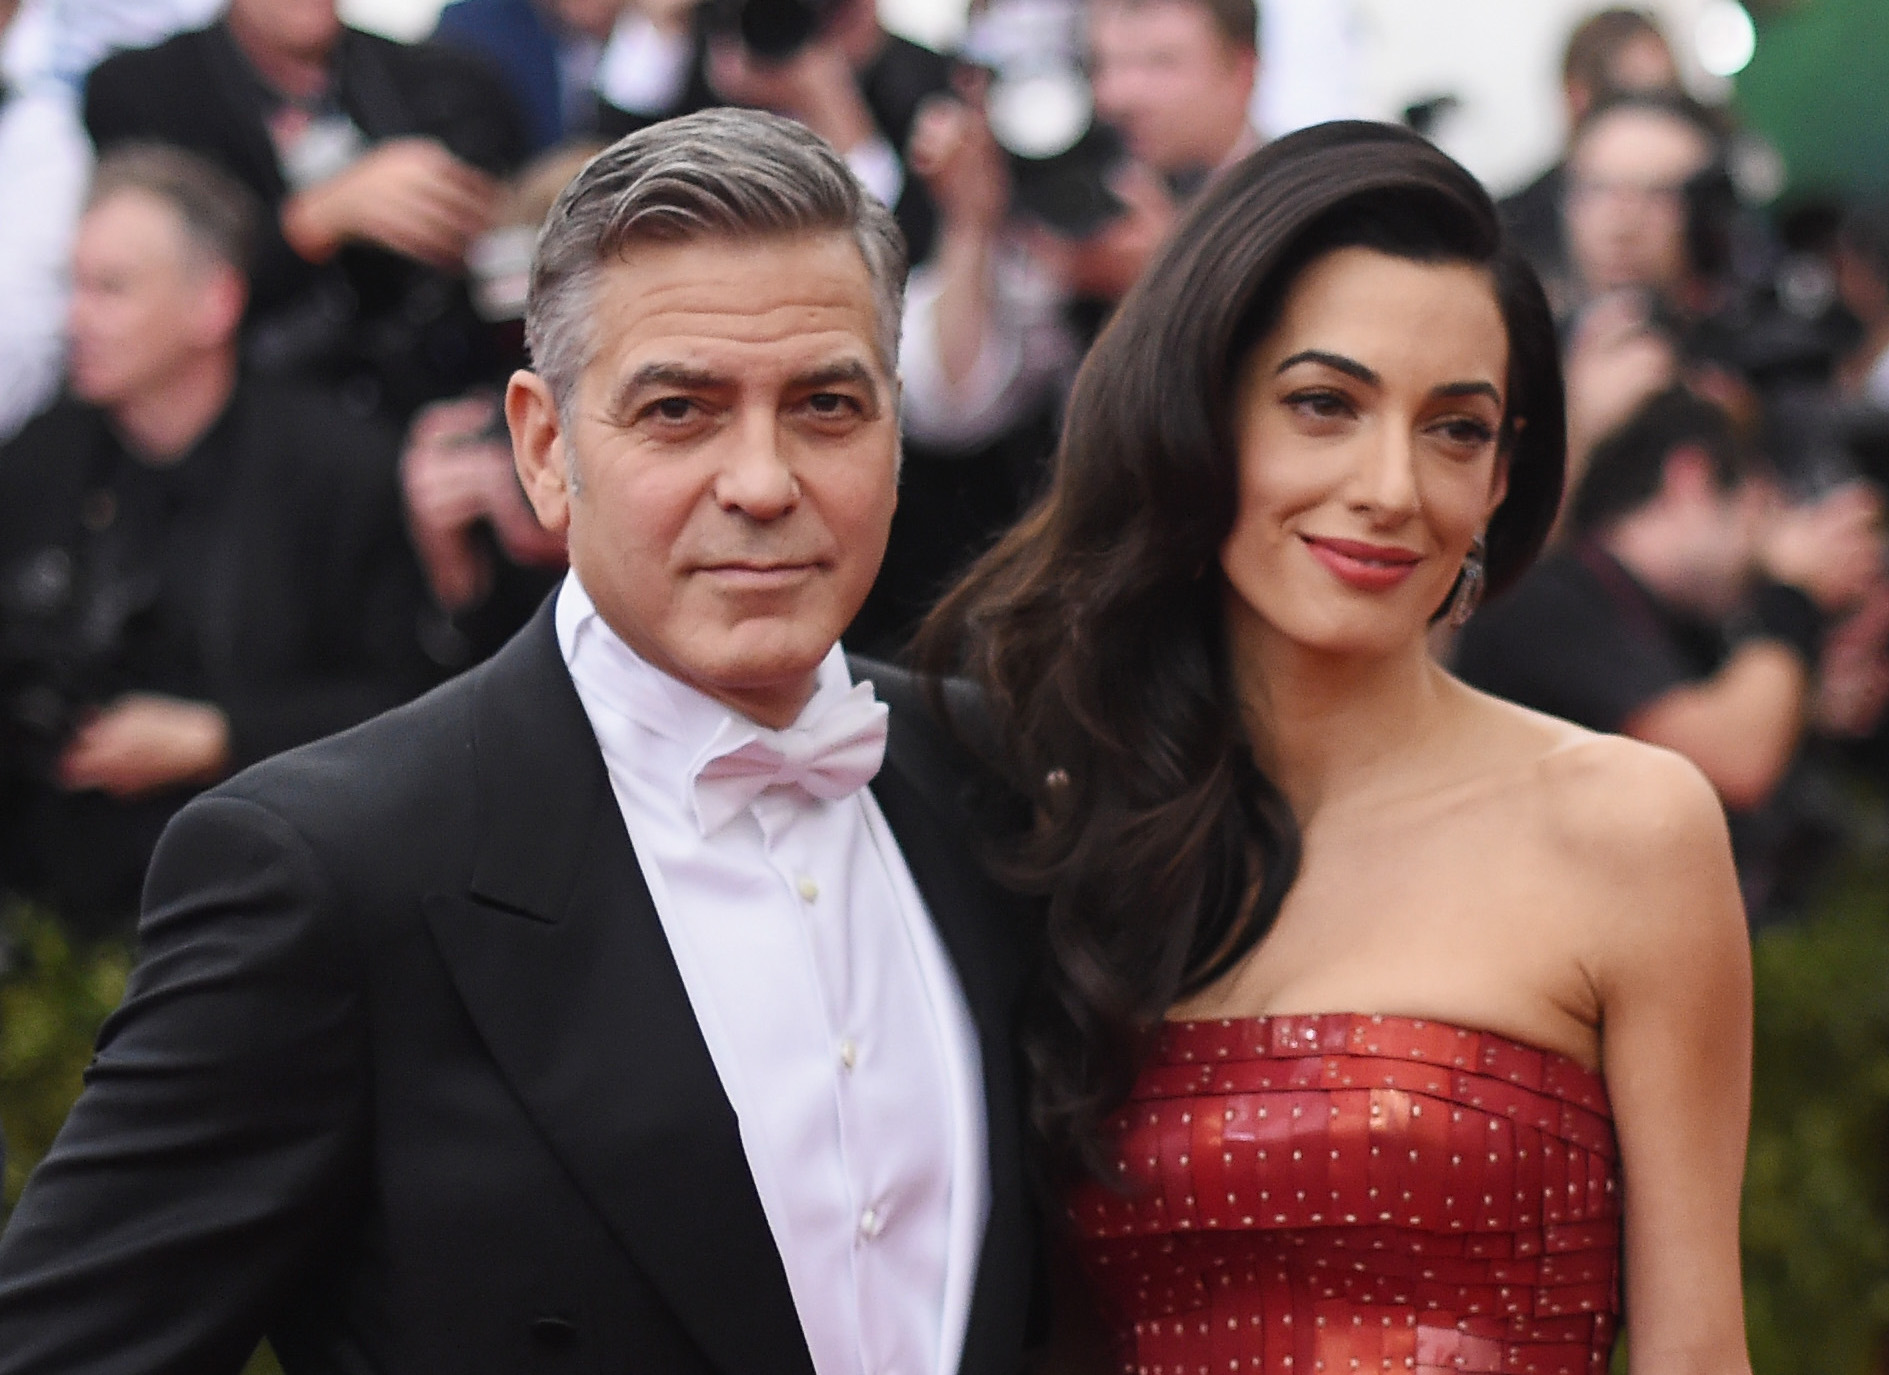 Just a reminder: George Clooney and Amal met in the most beautifully simple way possible